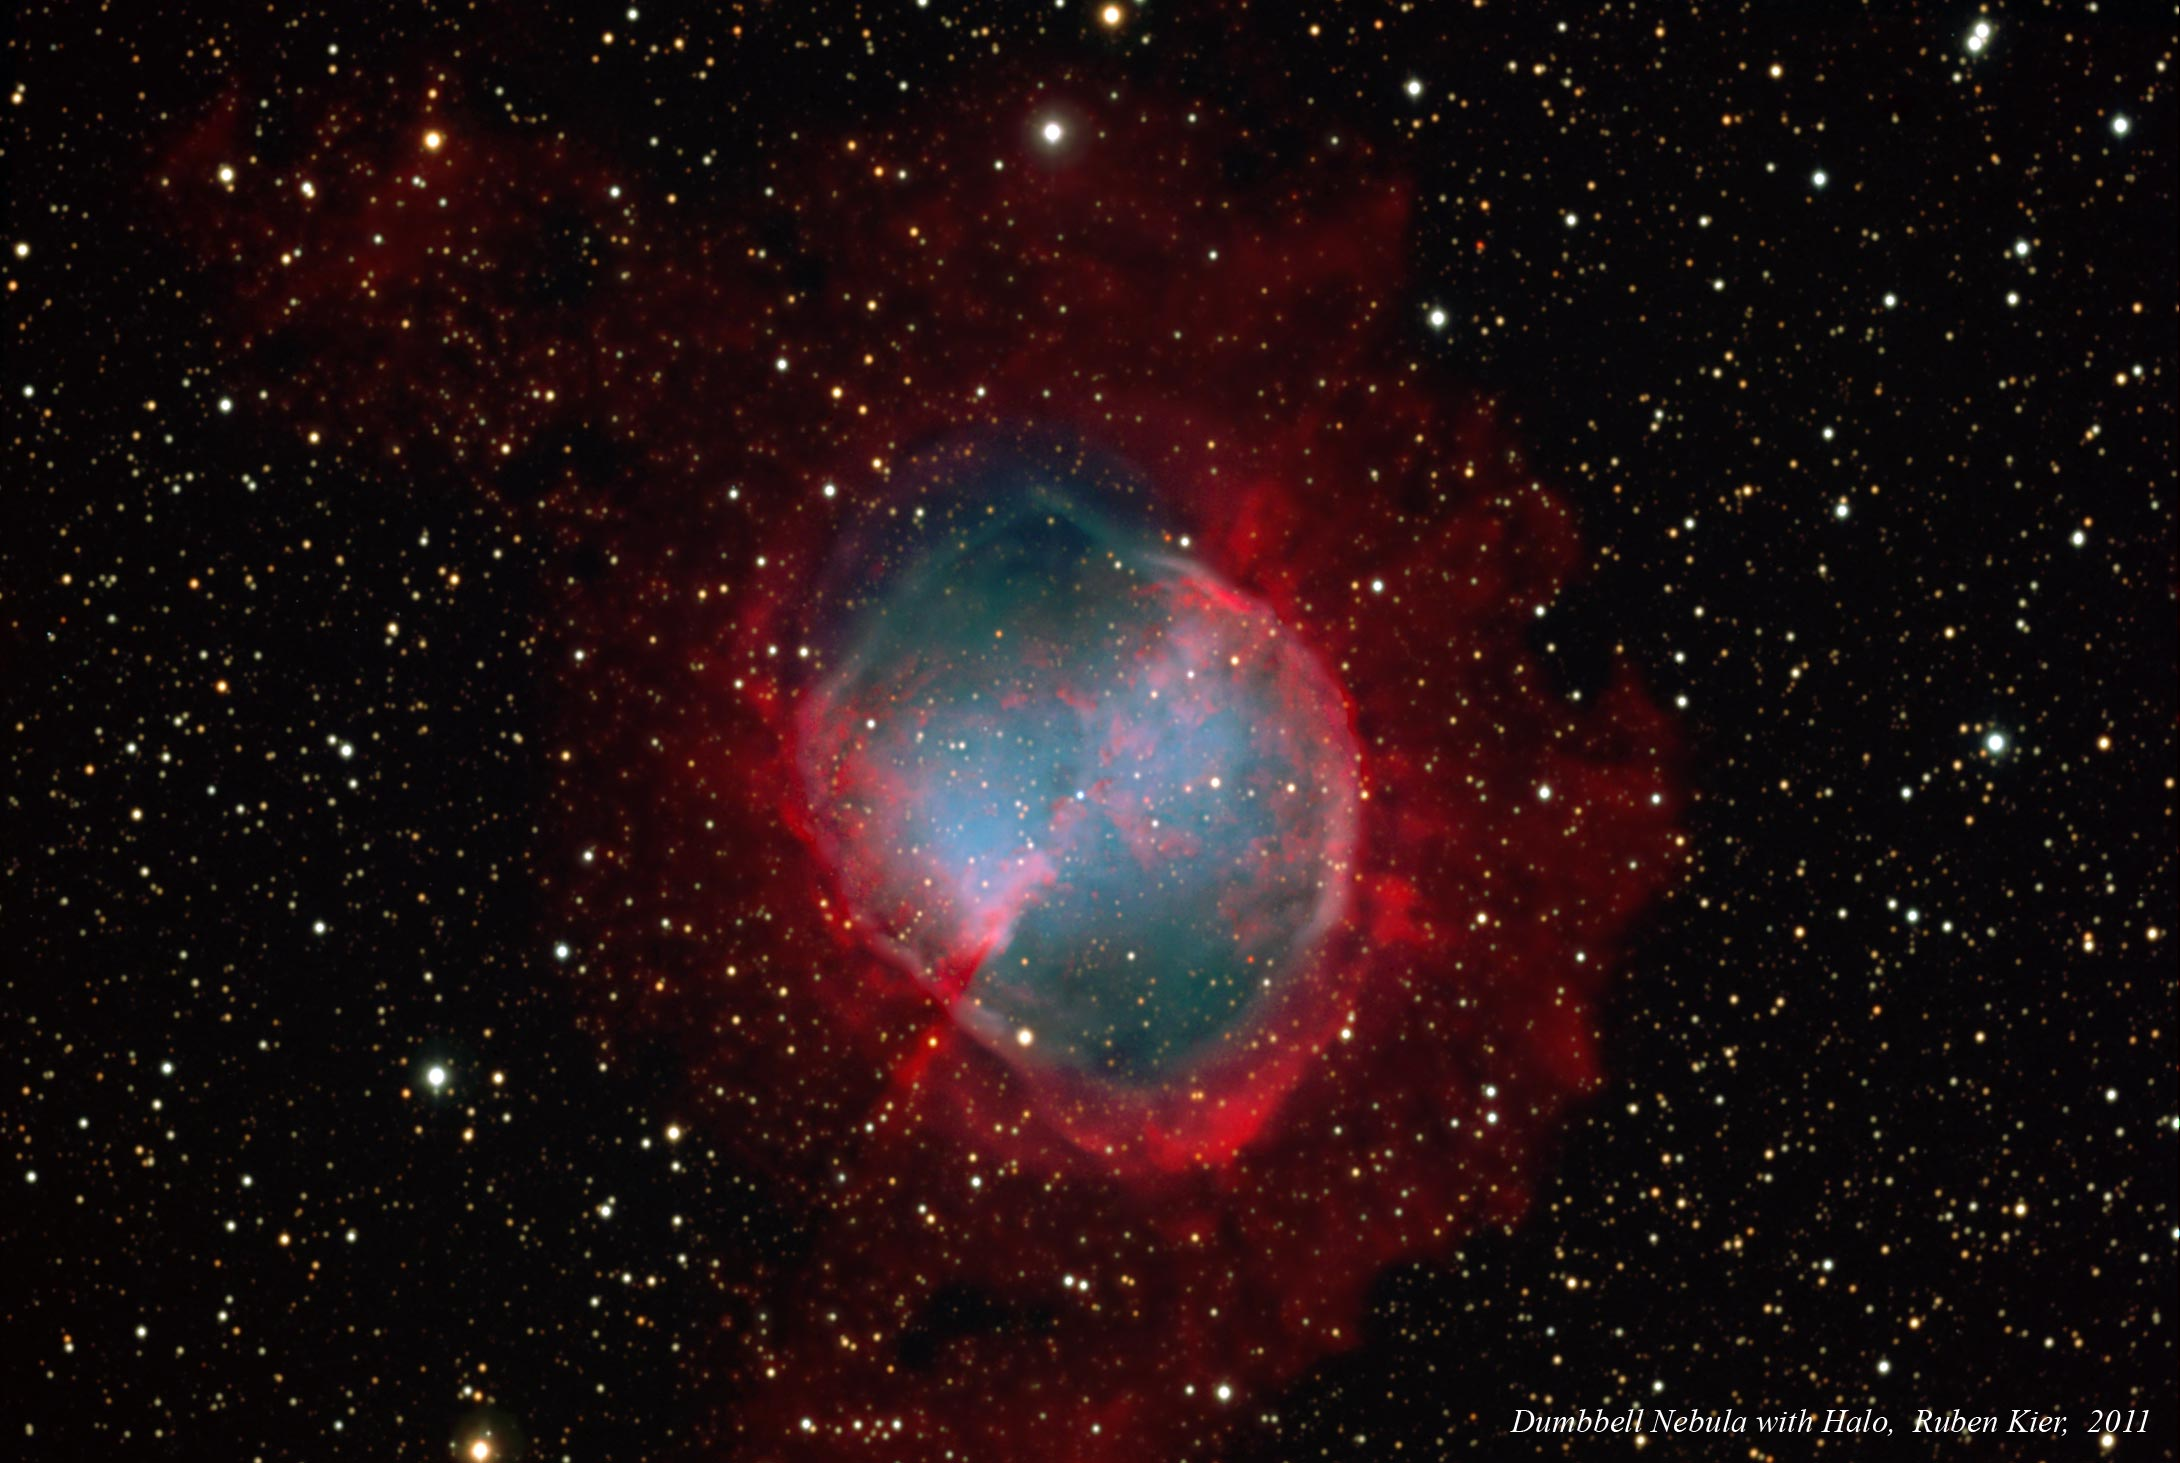 dumbbell nebula colors - photo #10